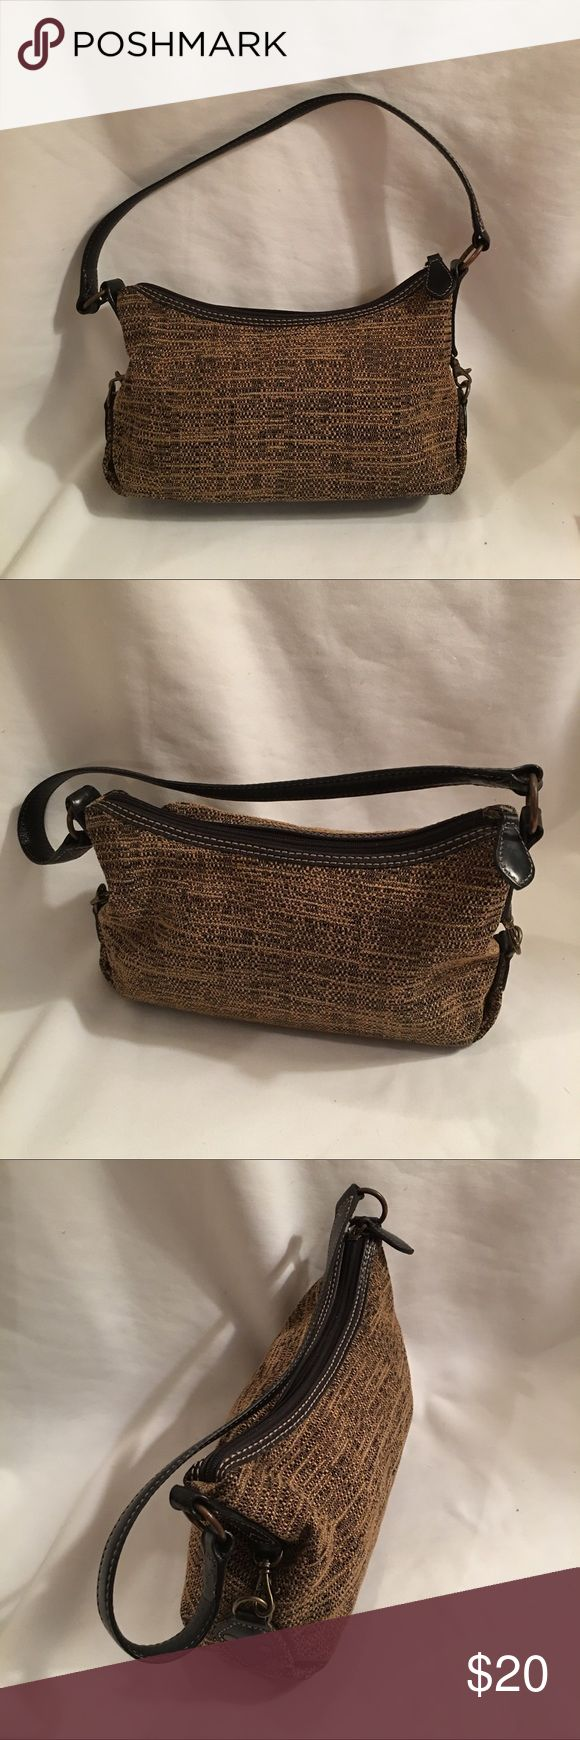 """Vintage brown tapestry Fossil bag Cool vintage tapestry fossil bag with leather bottom and strap in great condition  11"""" across 6@ height 3"""" depth 10"""" drop Fossil Bags Shoulder Bags"""